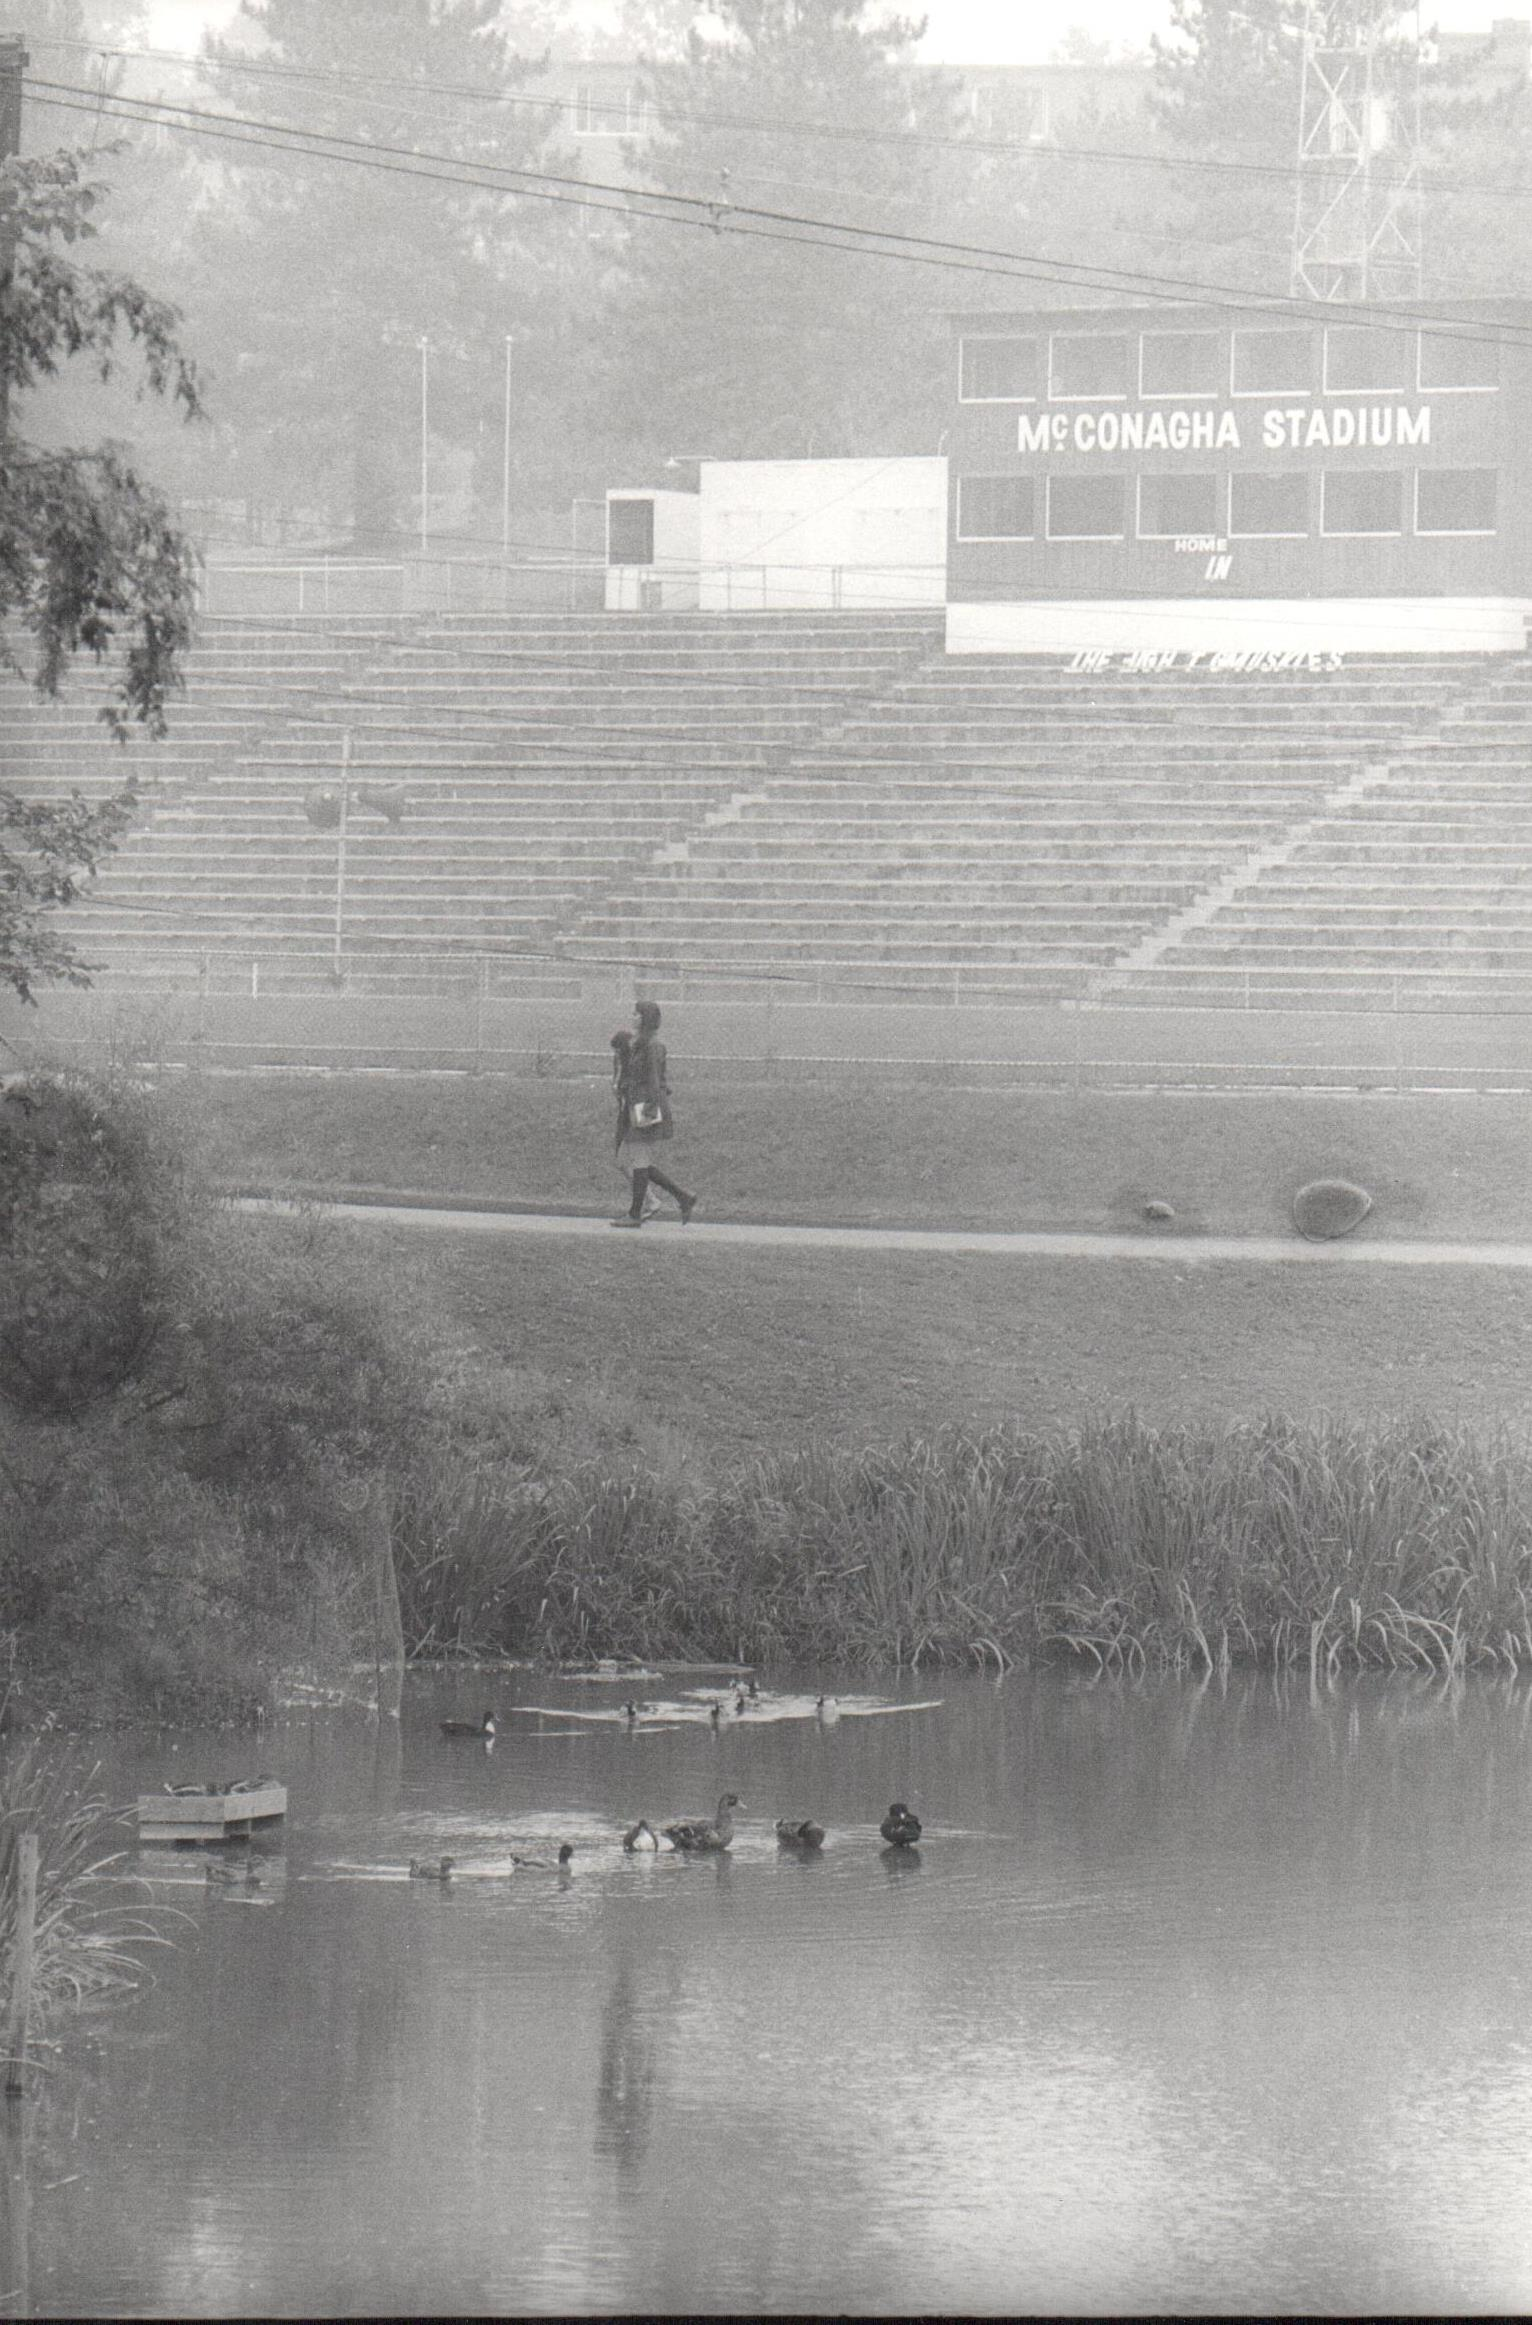 View of the stadium from across the College Lake